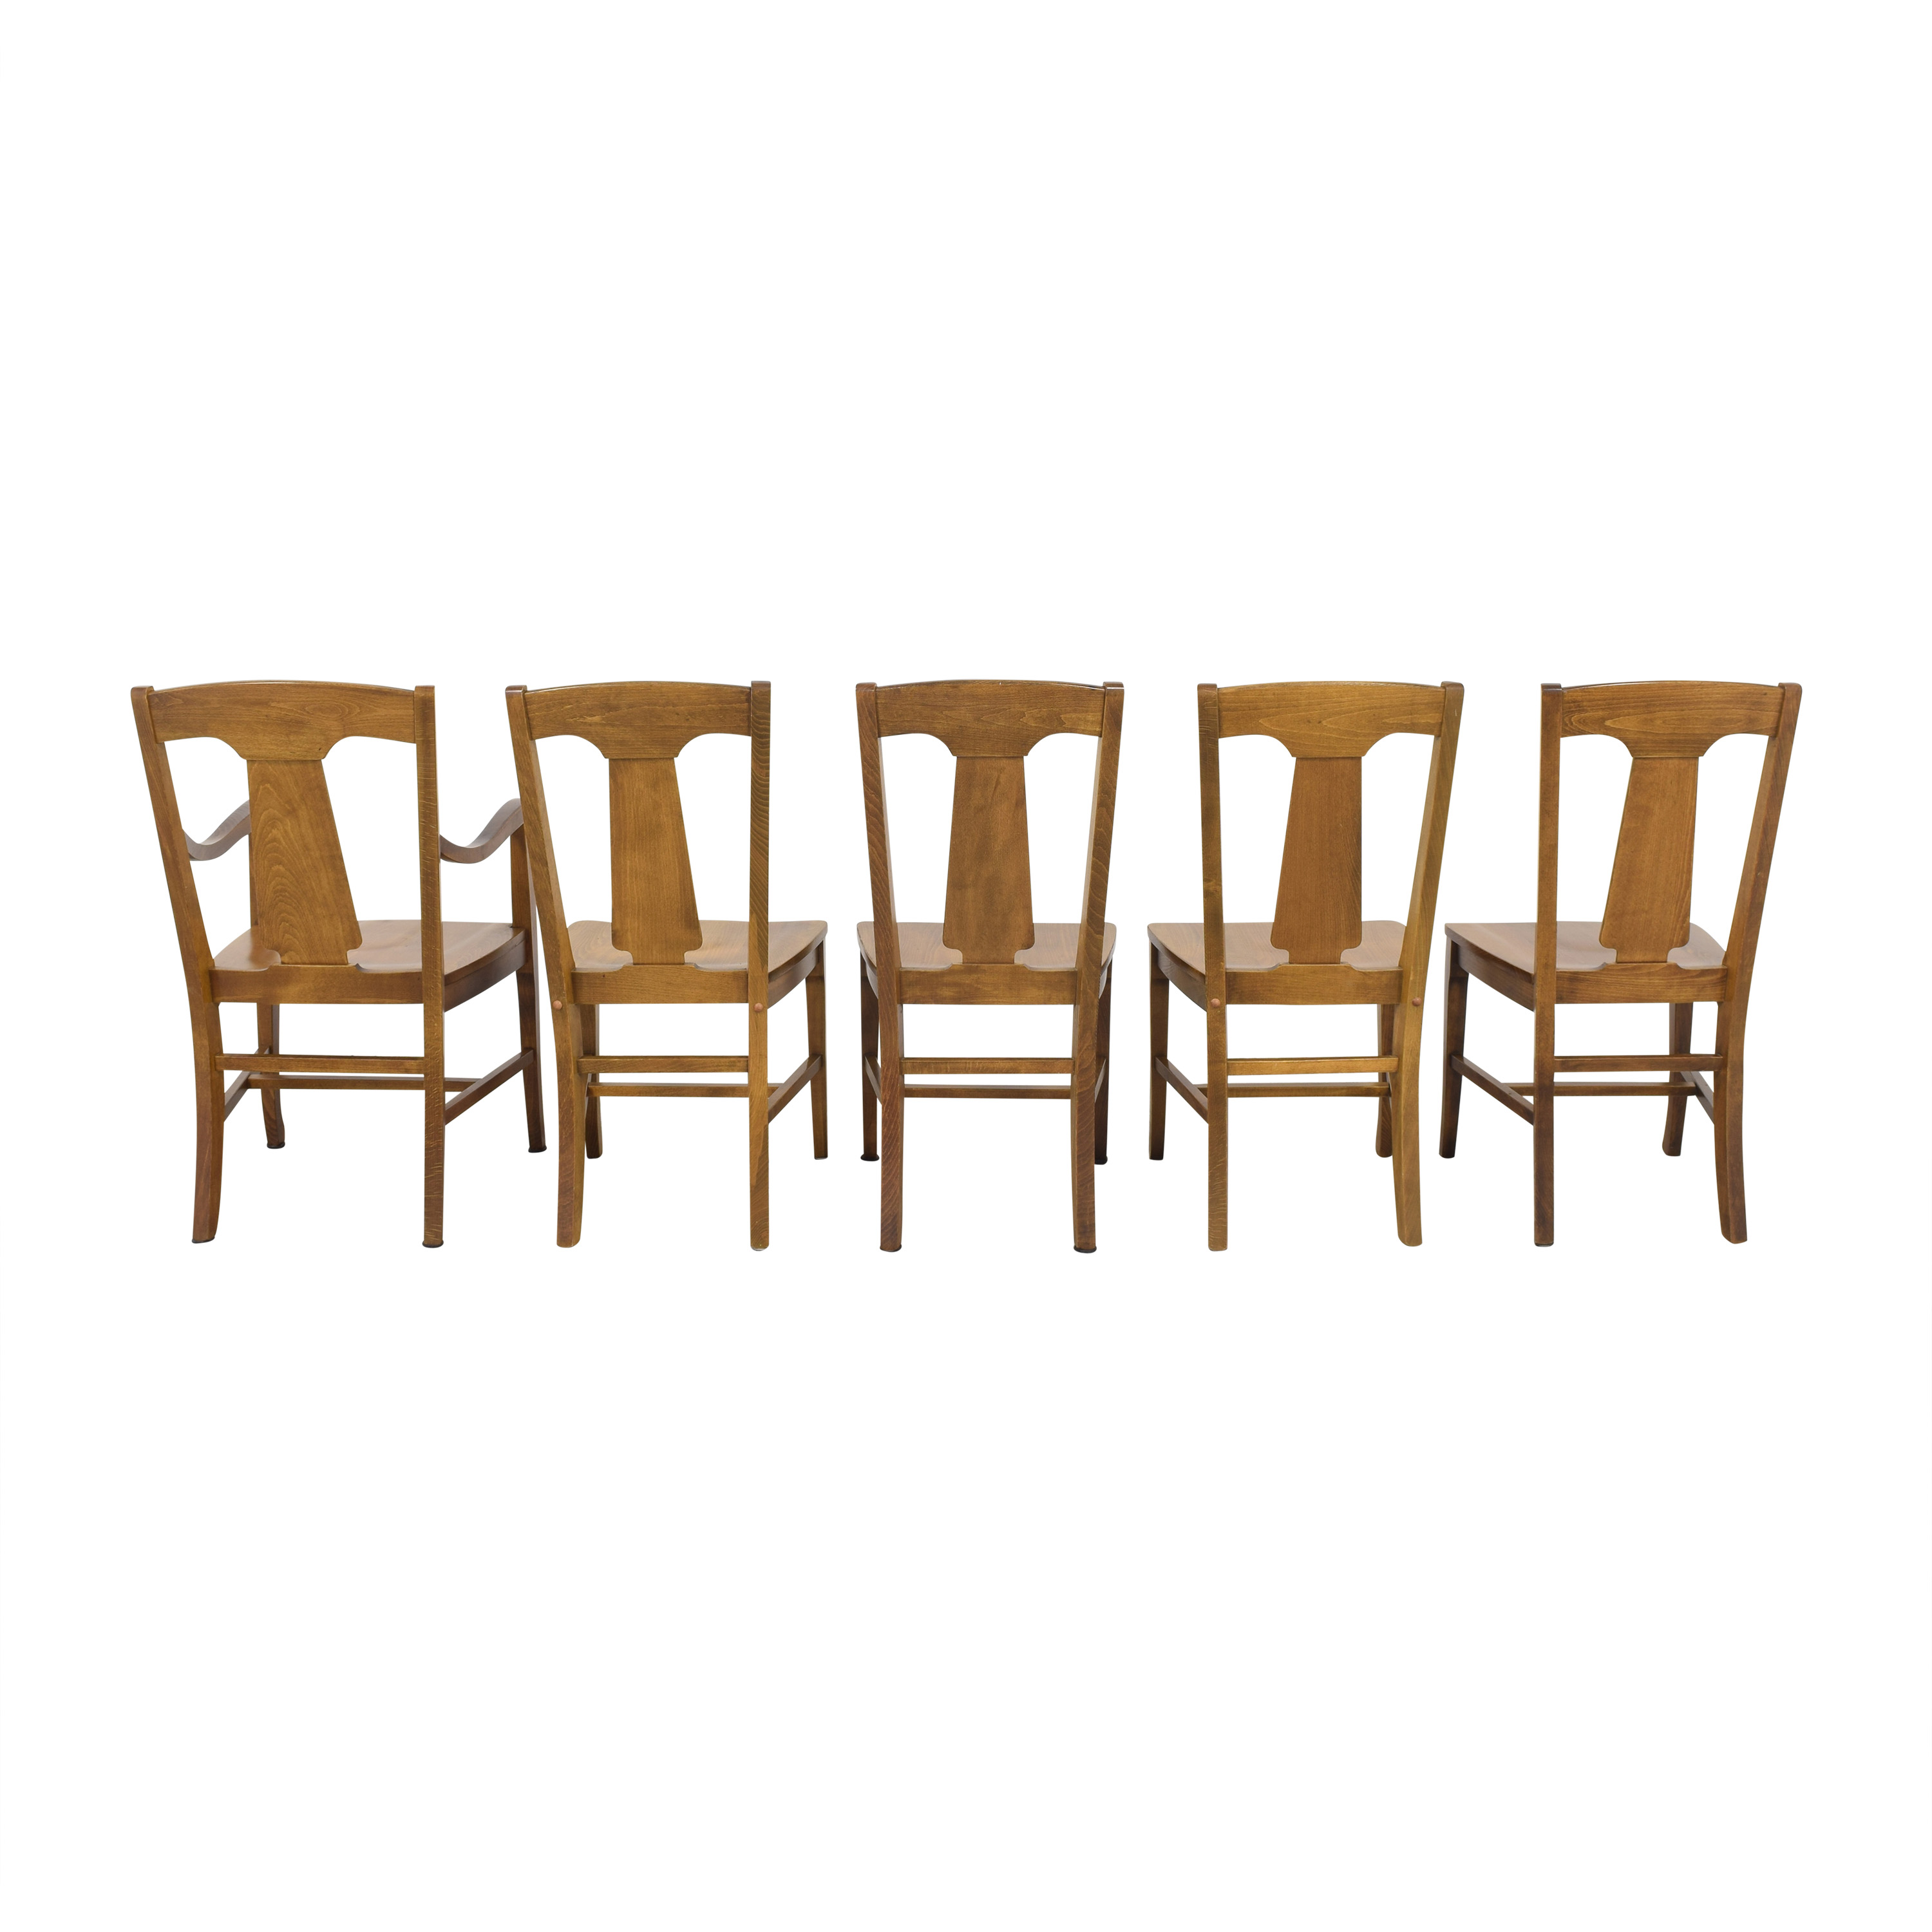 buy Pottery Barn Pottery Barn Loren Dining Chairs online